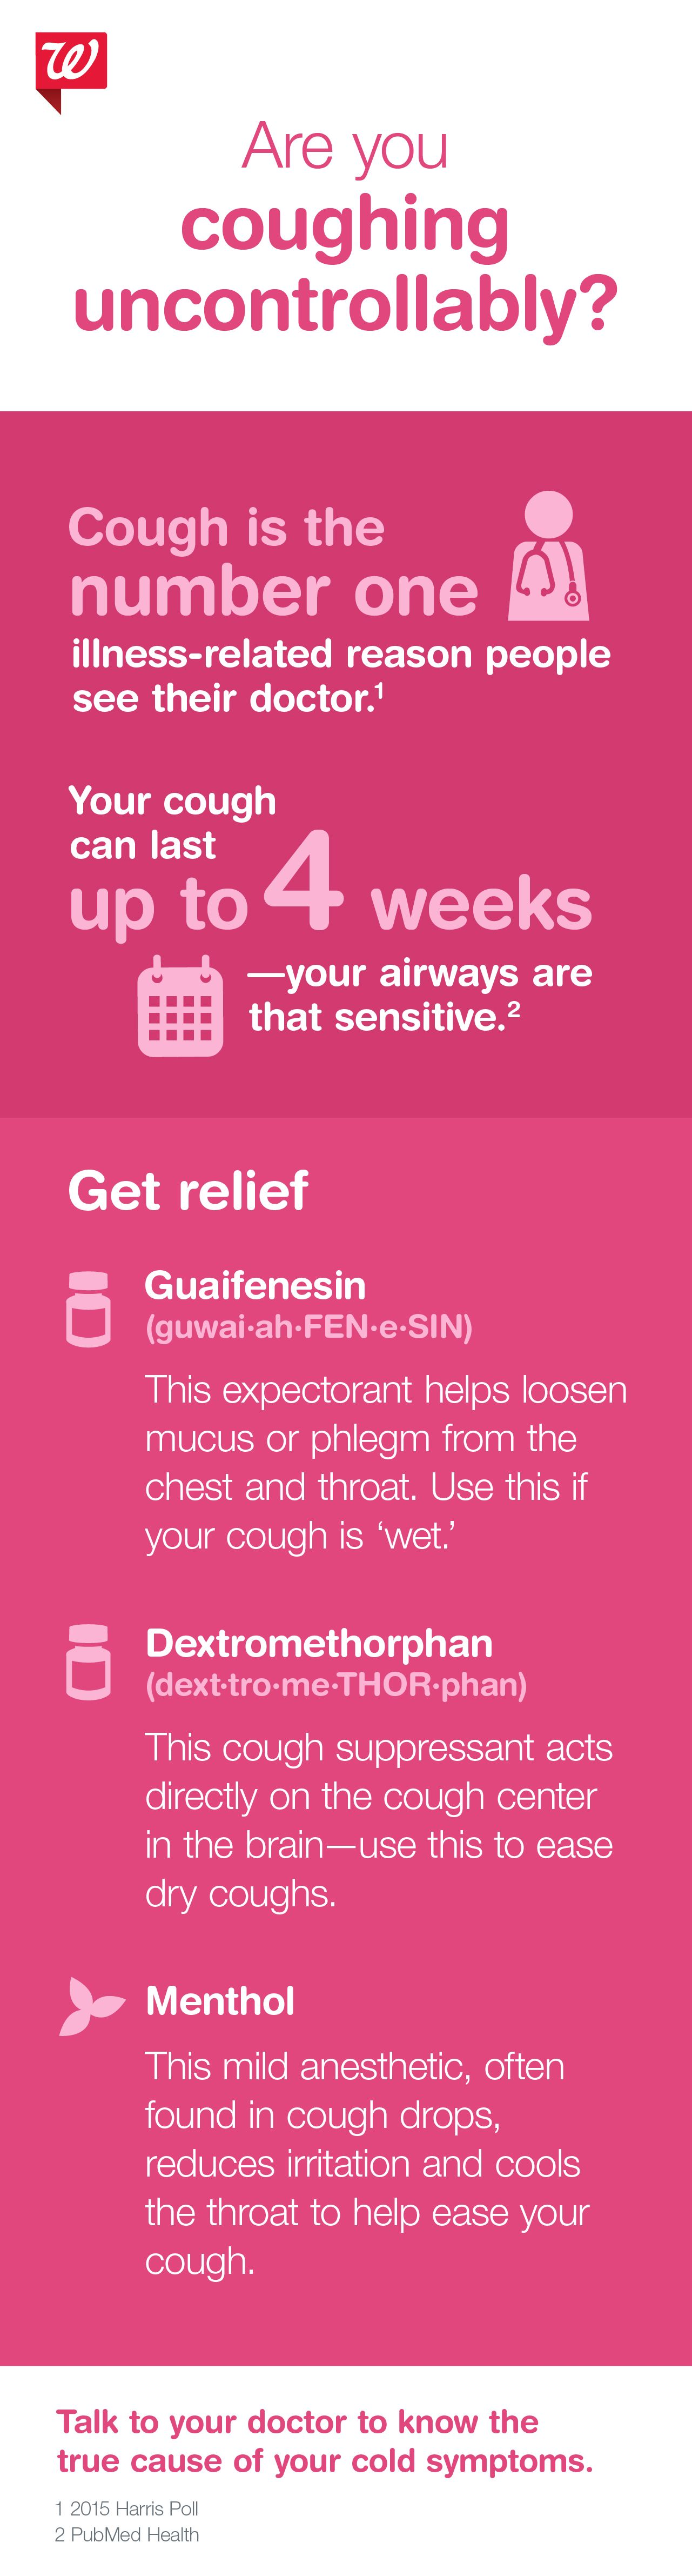 Calm Your Uncontrollable Cough Find Cold Relief Fast Medical